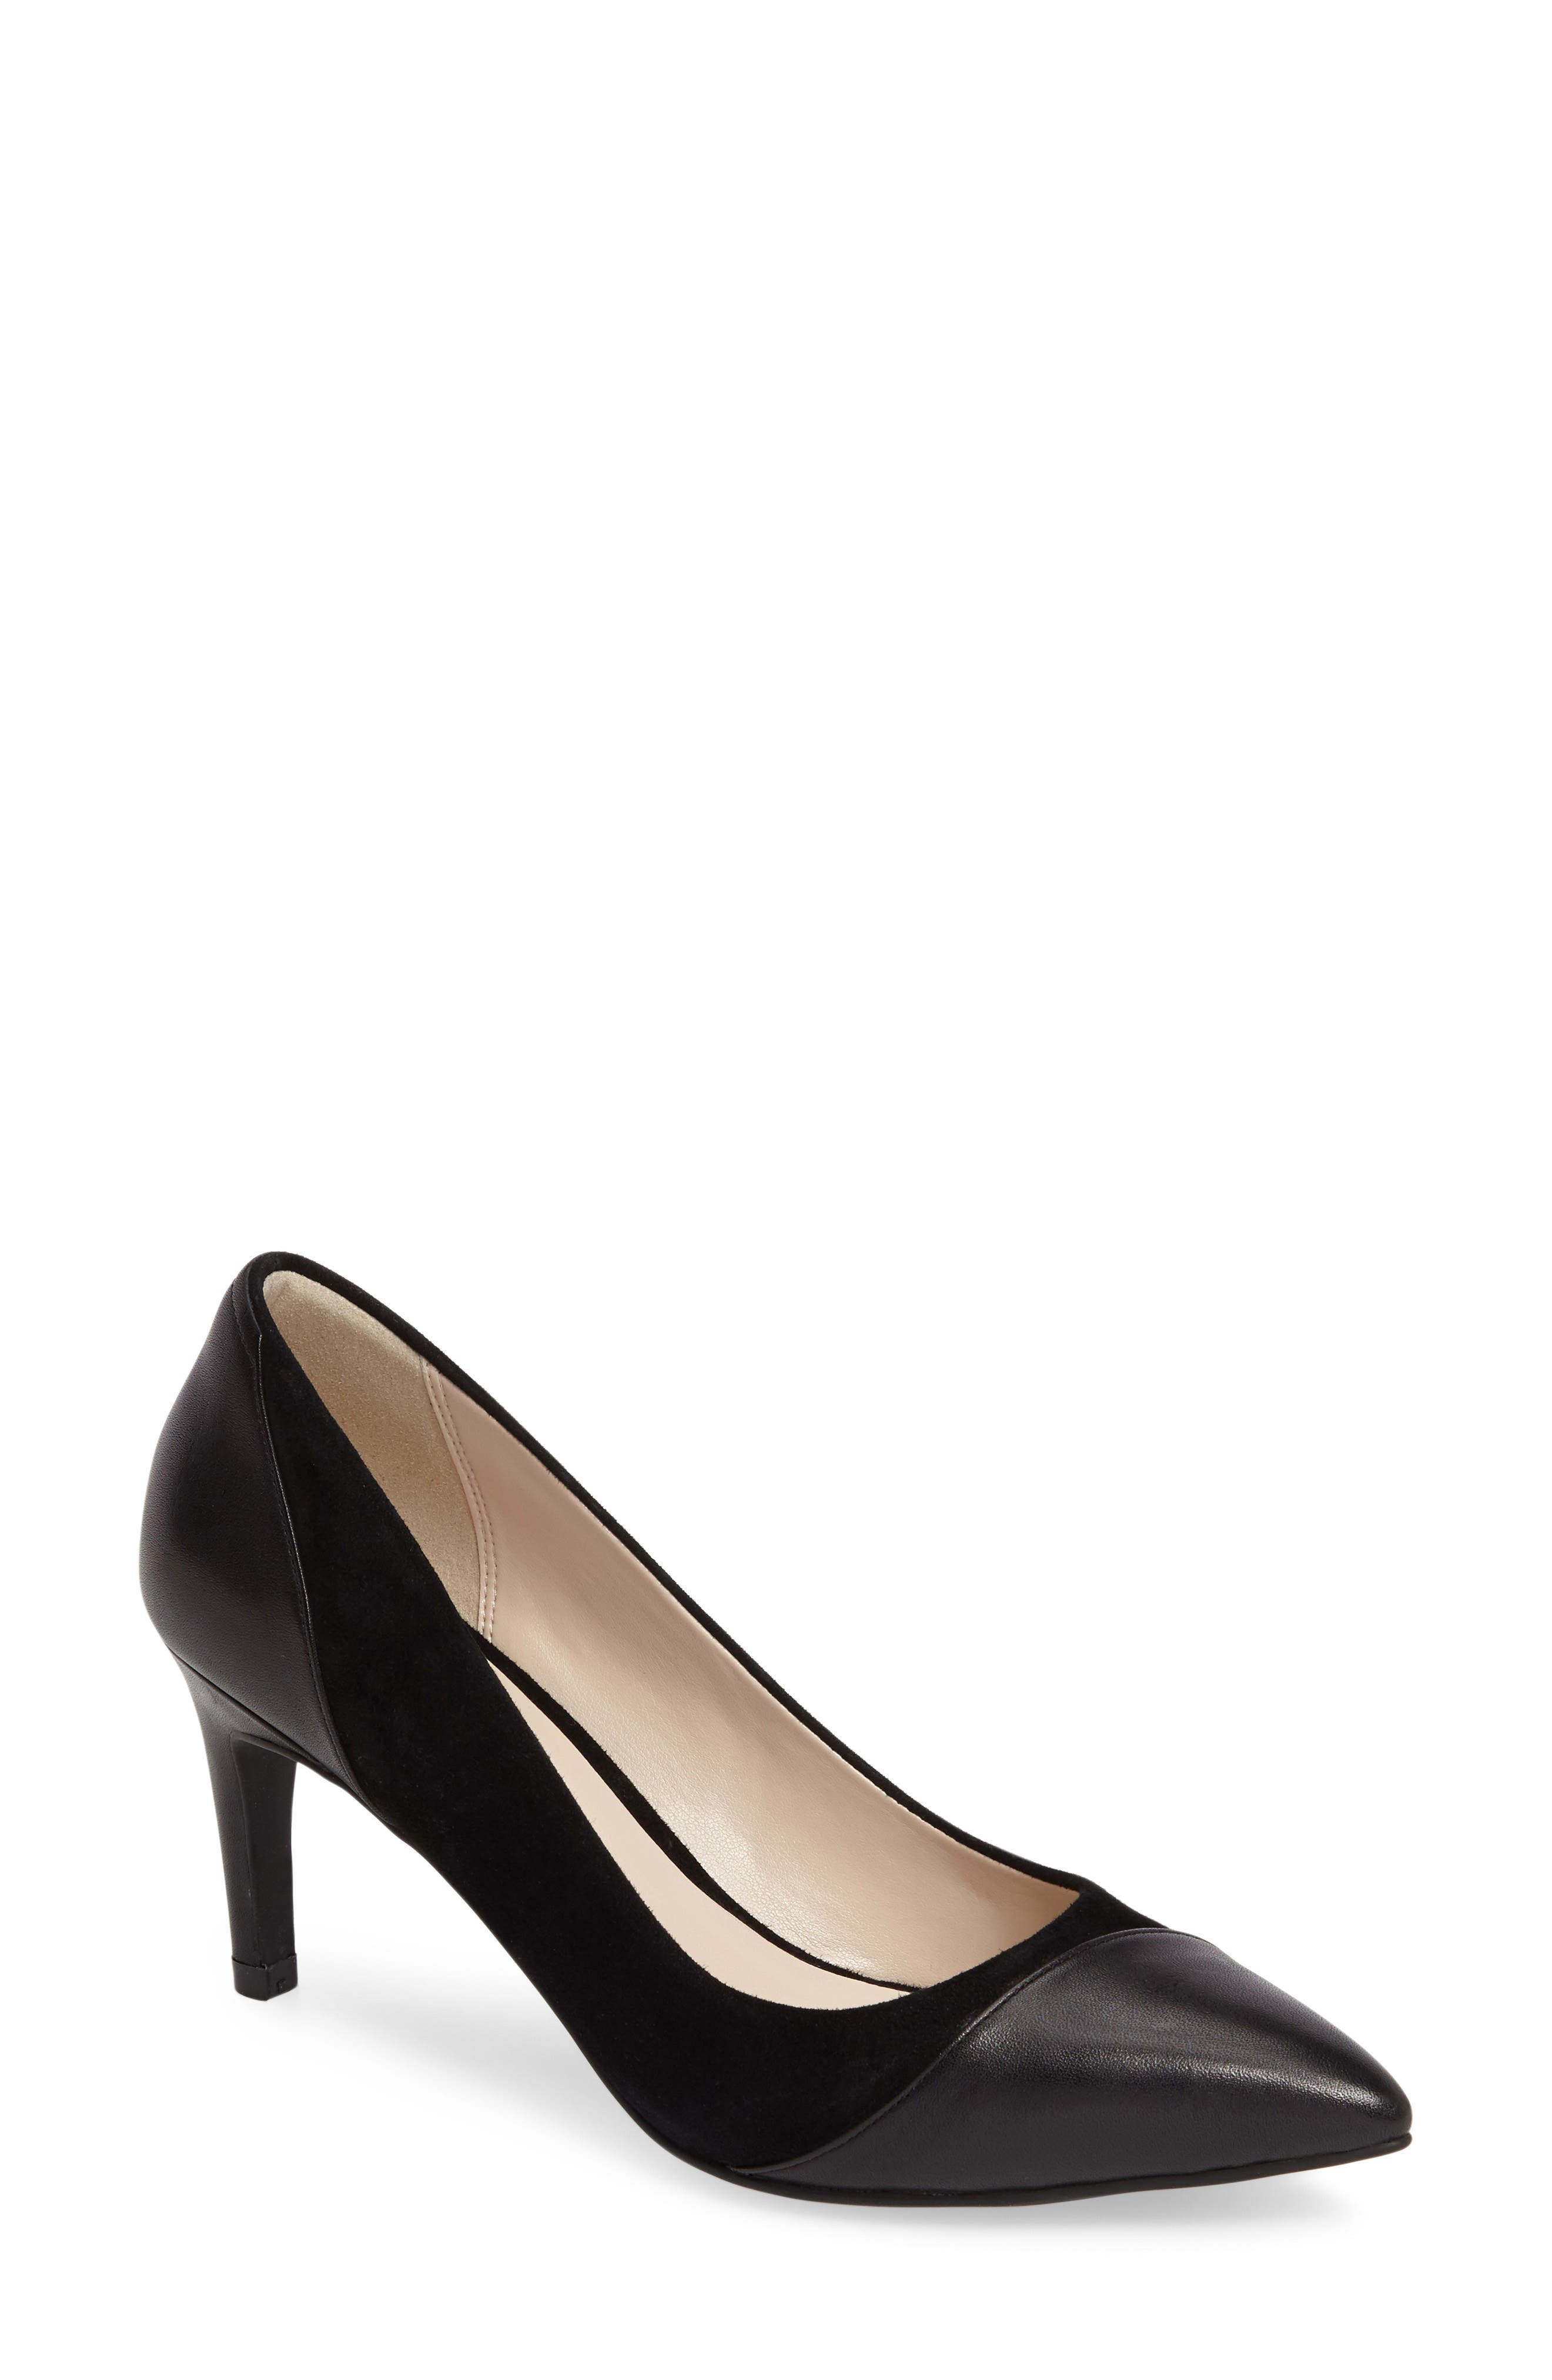 Shayla Pointy Toe Pump,                             Main thumbnail 1, color,                             Black Suede